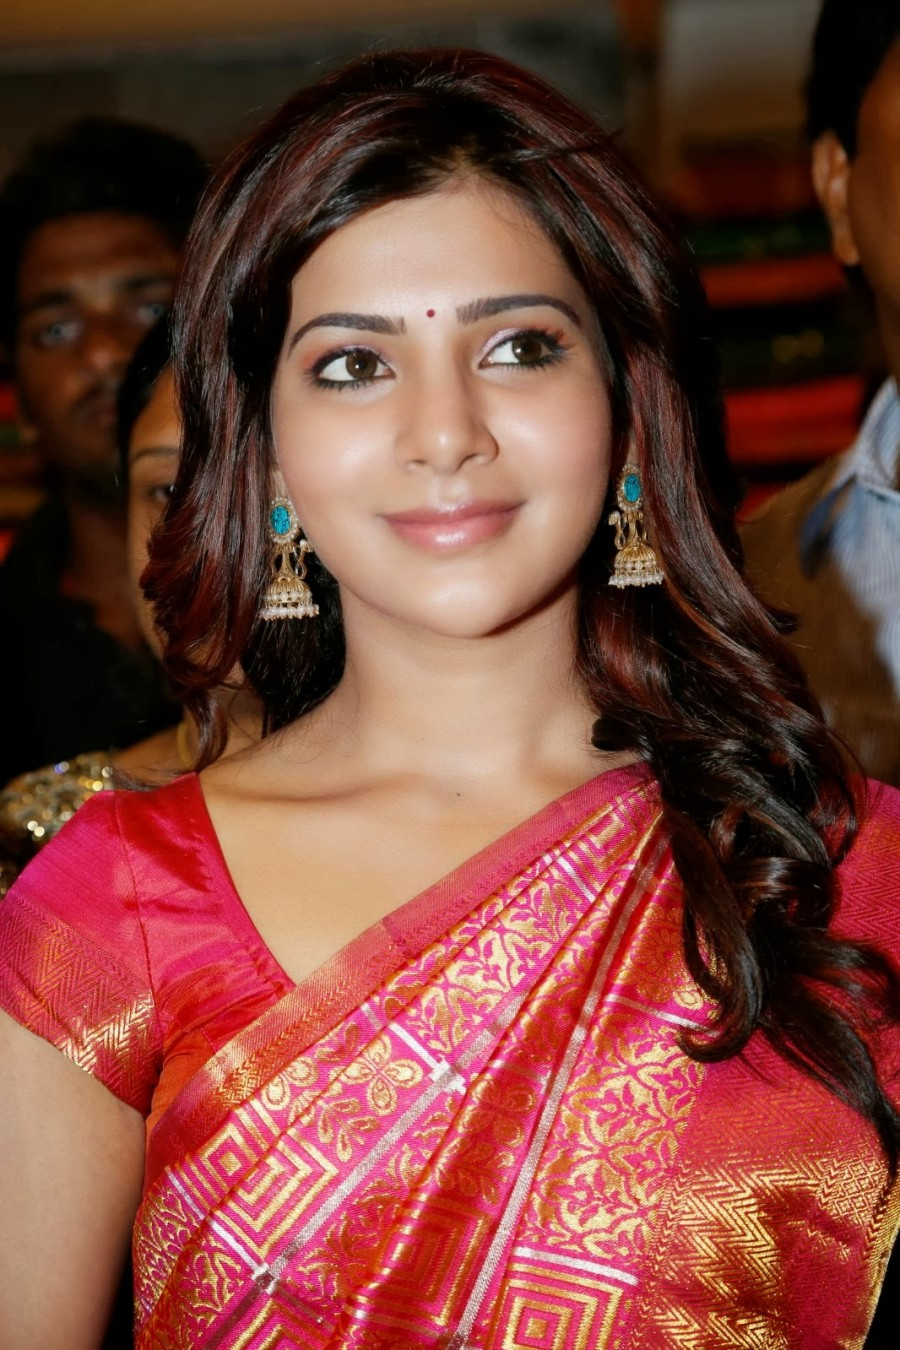 Samantha Rare and Unseen Pics,Samantha,actress Samantha,Samantha Ruth Prabhu,Samantha hot pics,hot Samantha,Samantha cute photos,Samantha latest pics,happy birthday Samantha,Samantha birthday celebration,Samantha birthday